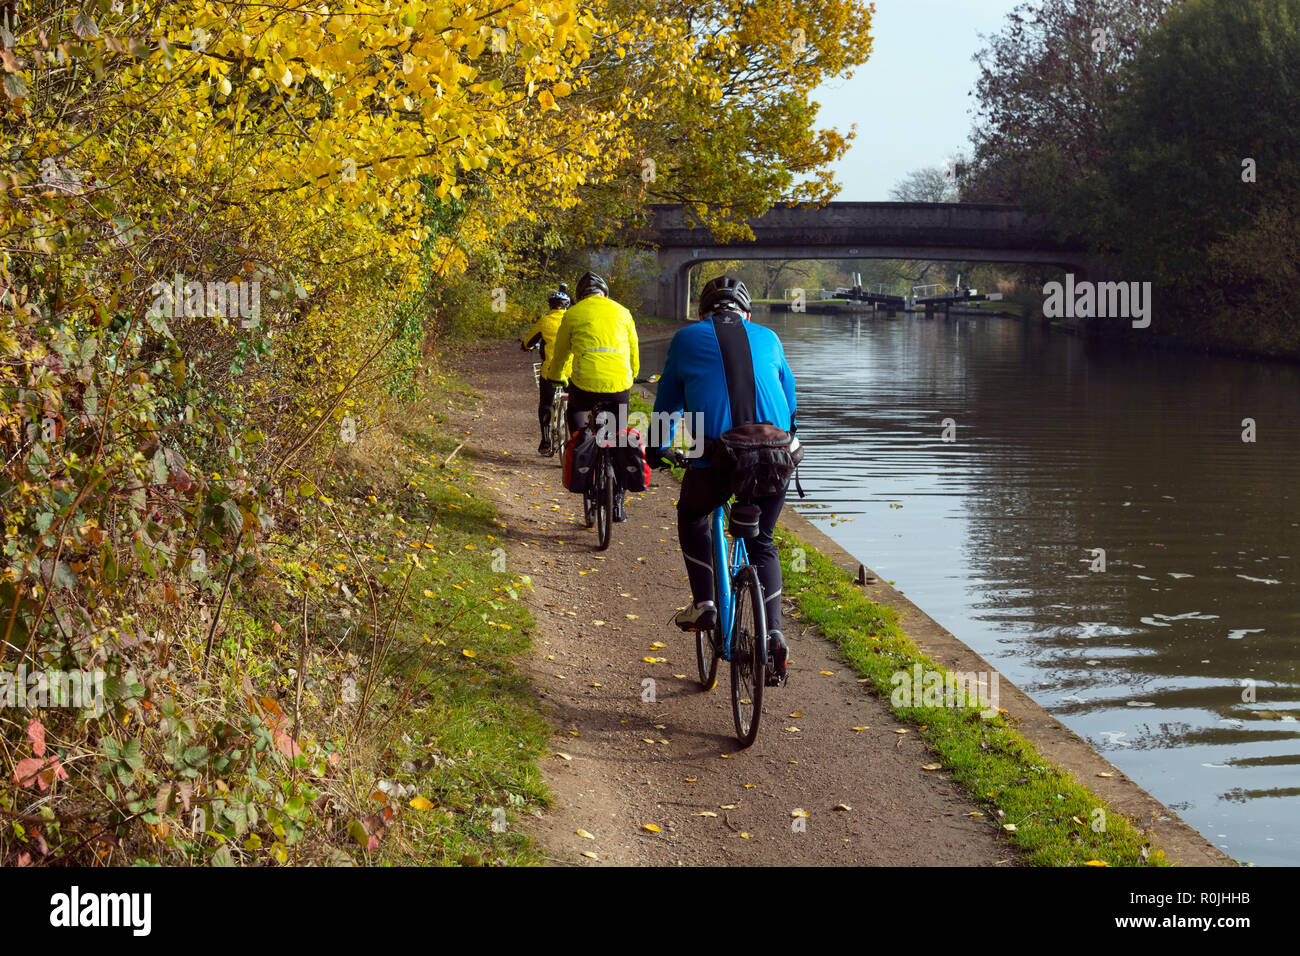 Cyclists on the Grand Union Canal towpath in autumn, Hatton Locks, Warwickshire, UK - Stock Image